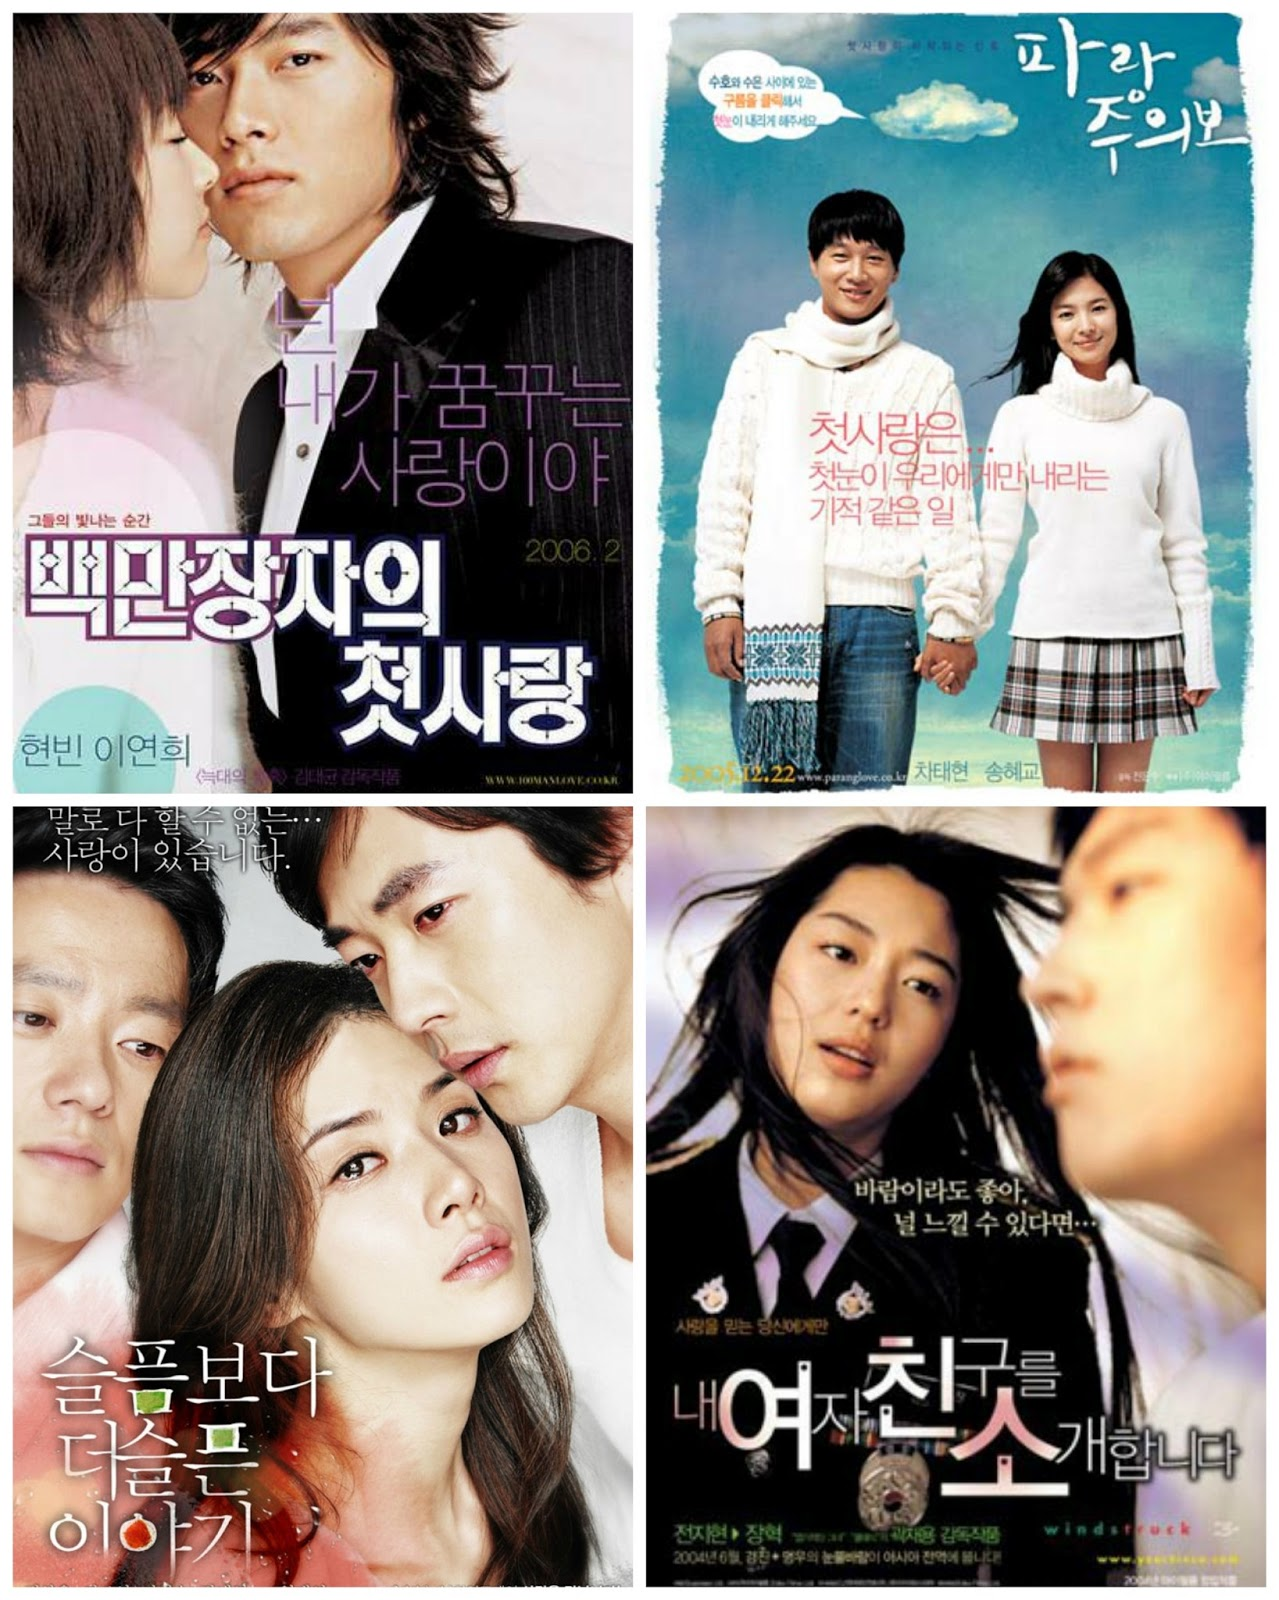 New korean romance comedy movies - Chick flick movies top 100